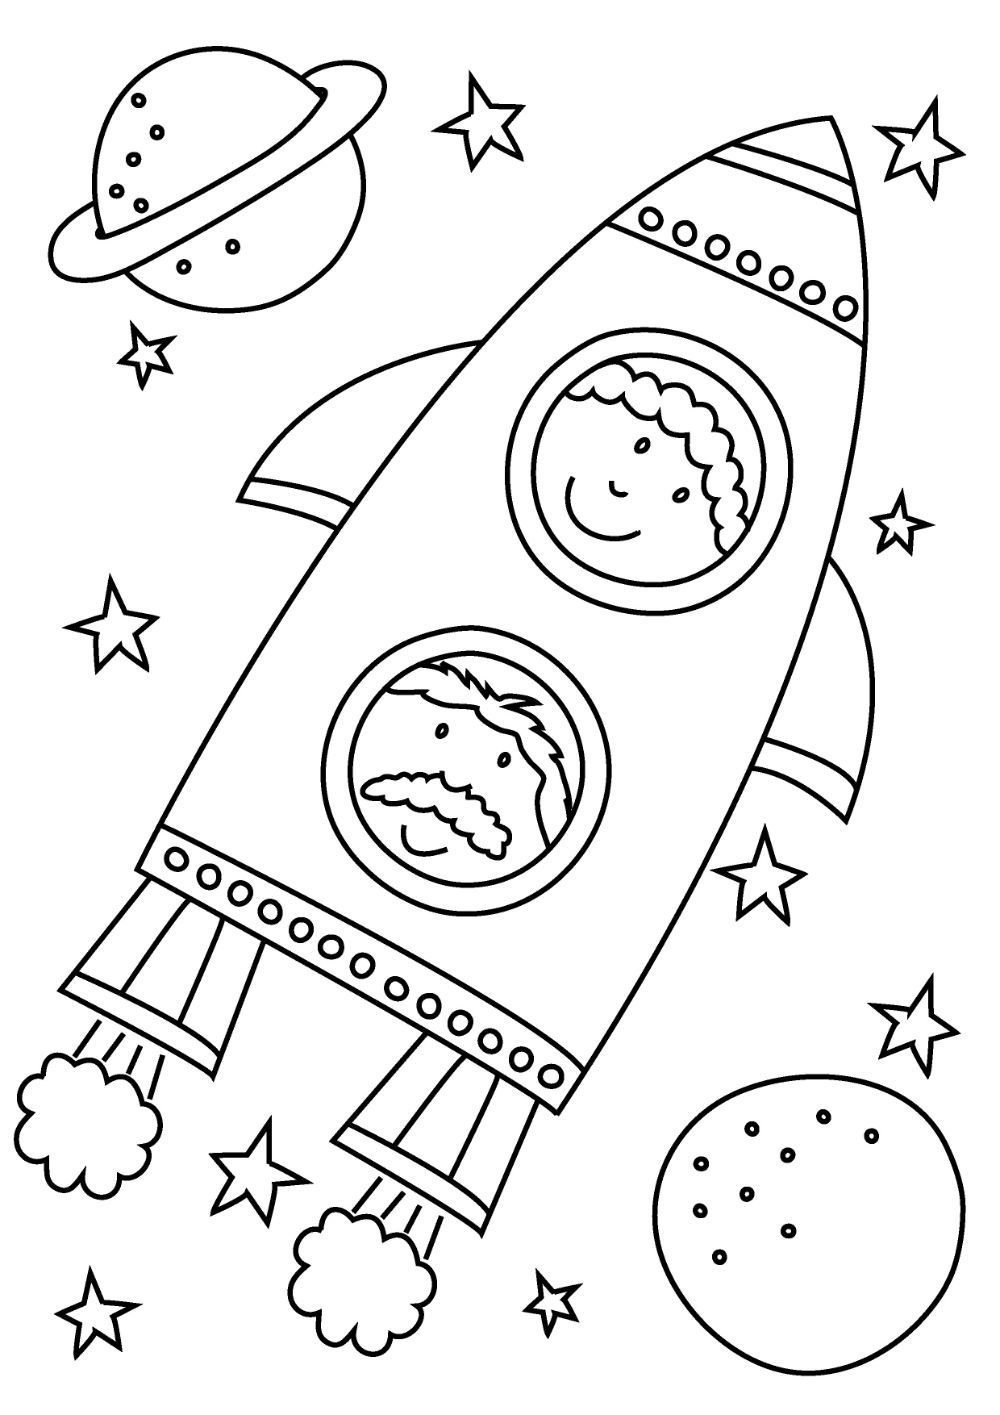 space rocket coloring pages - HD 1000×1415